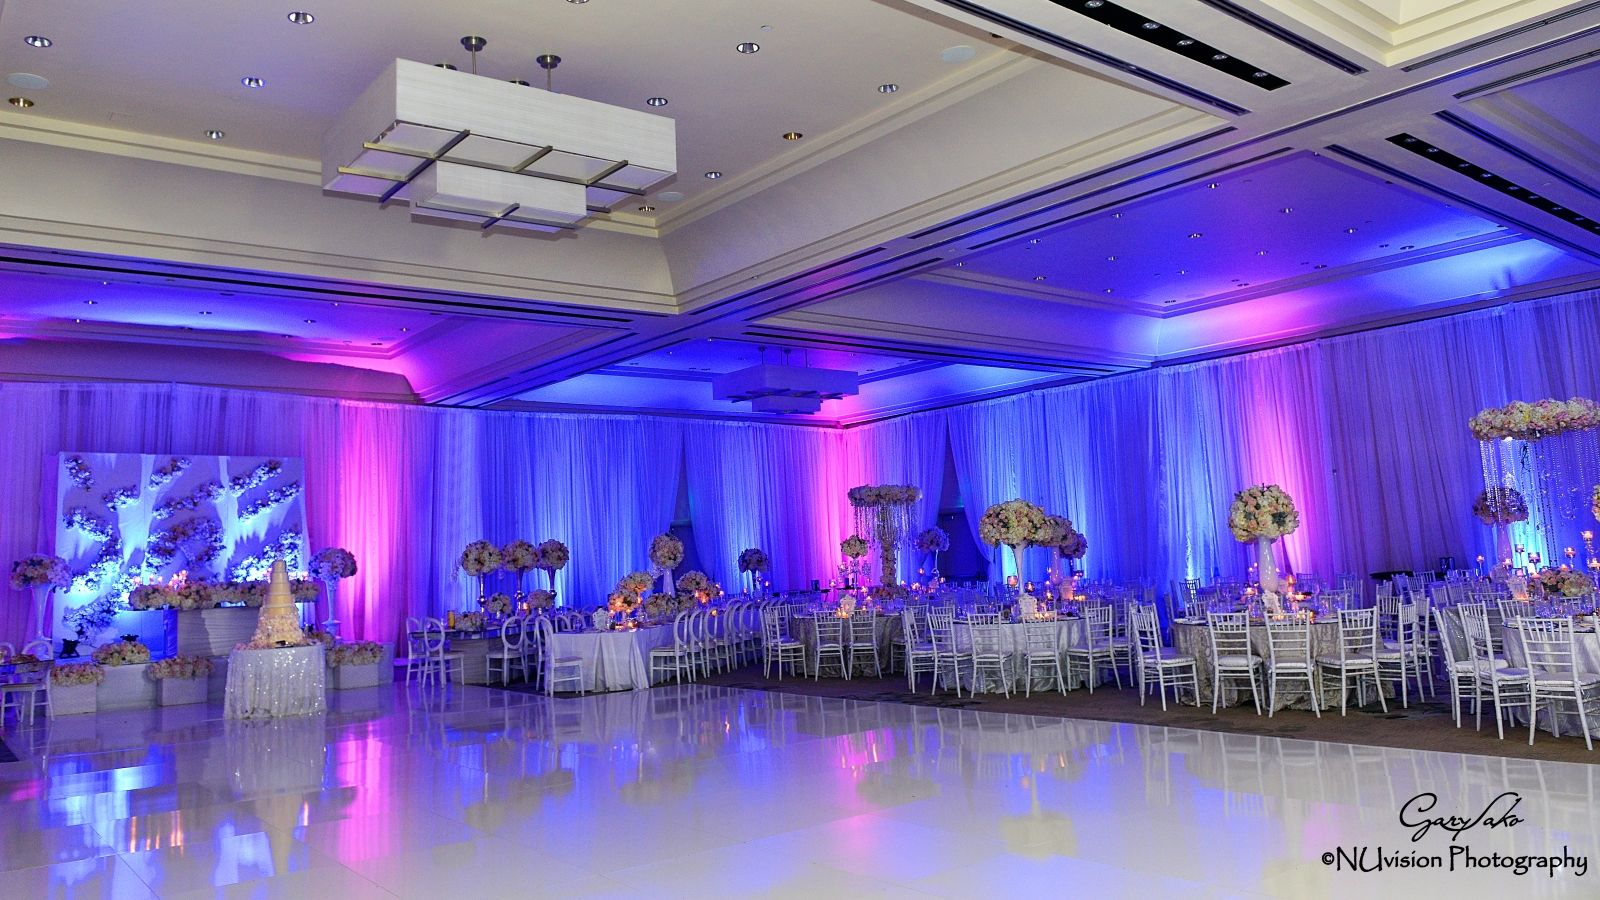 San Diego Weddings - California Ballroom Venue